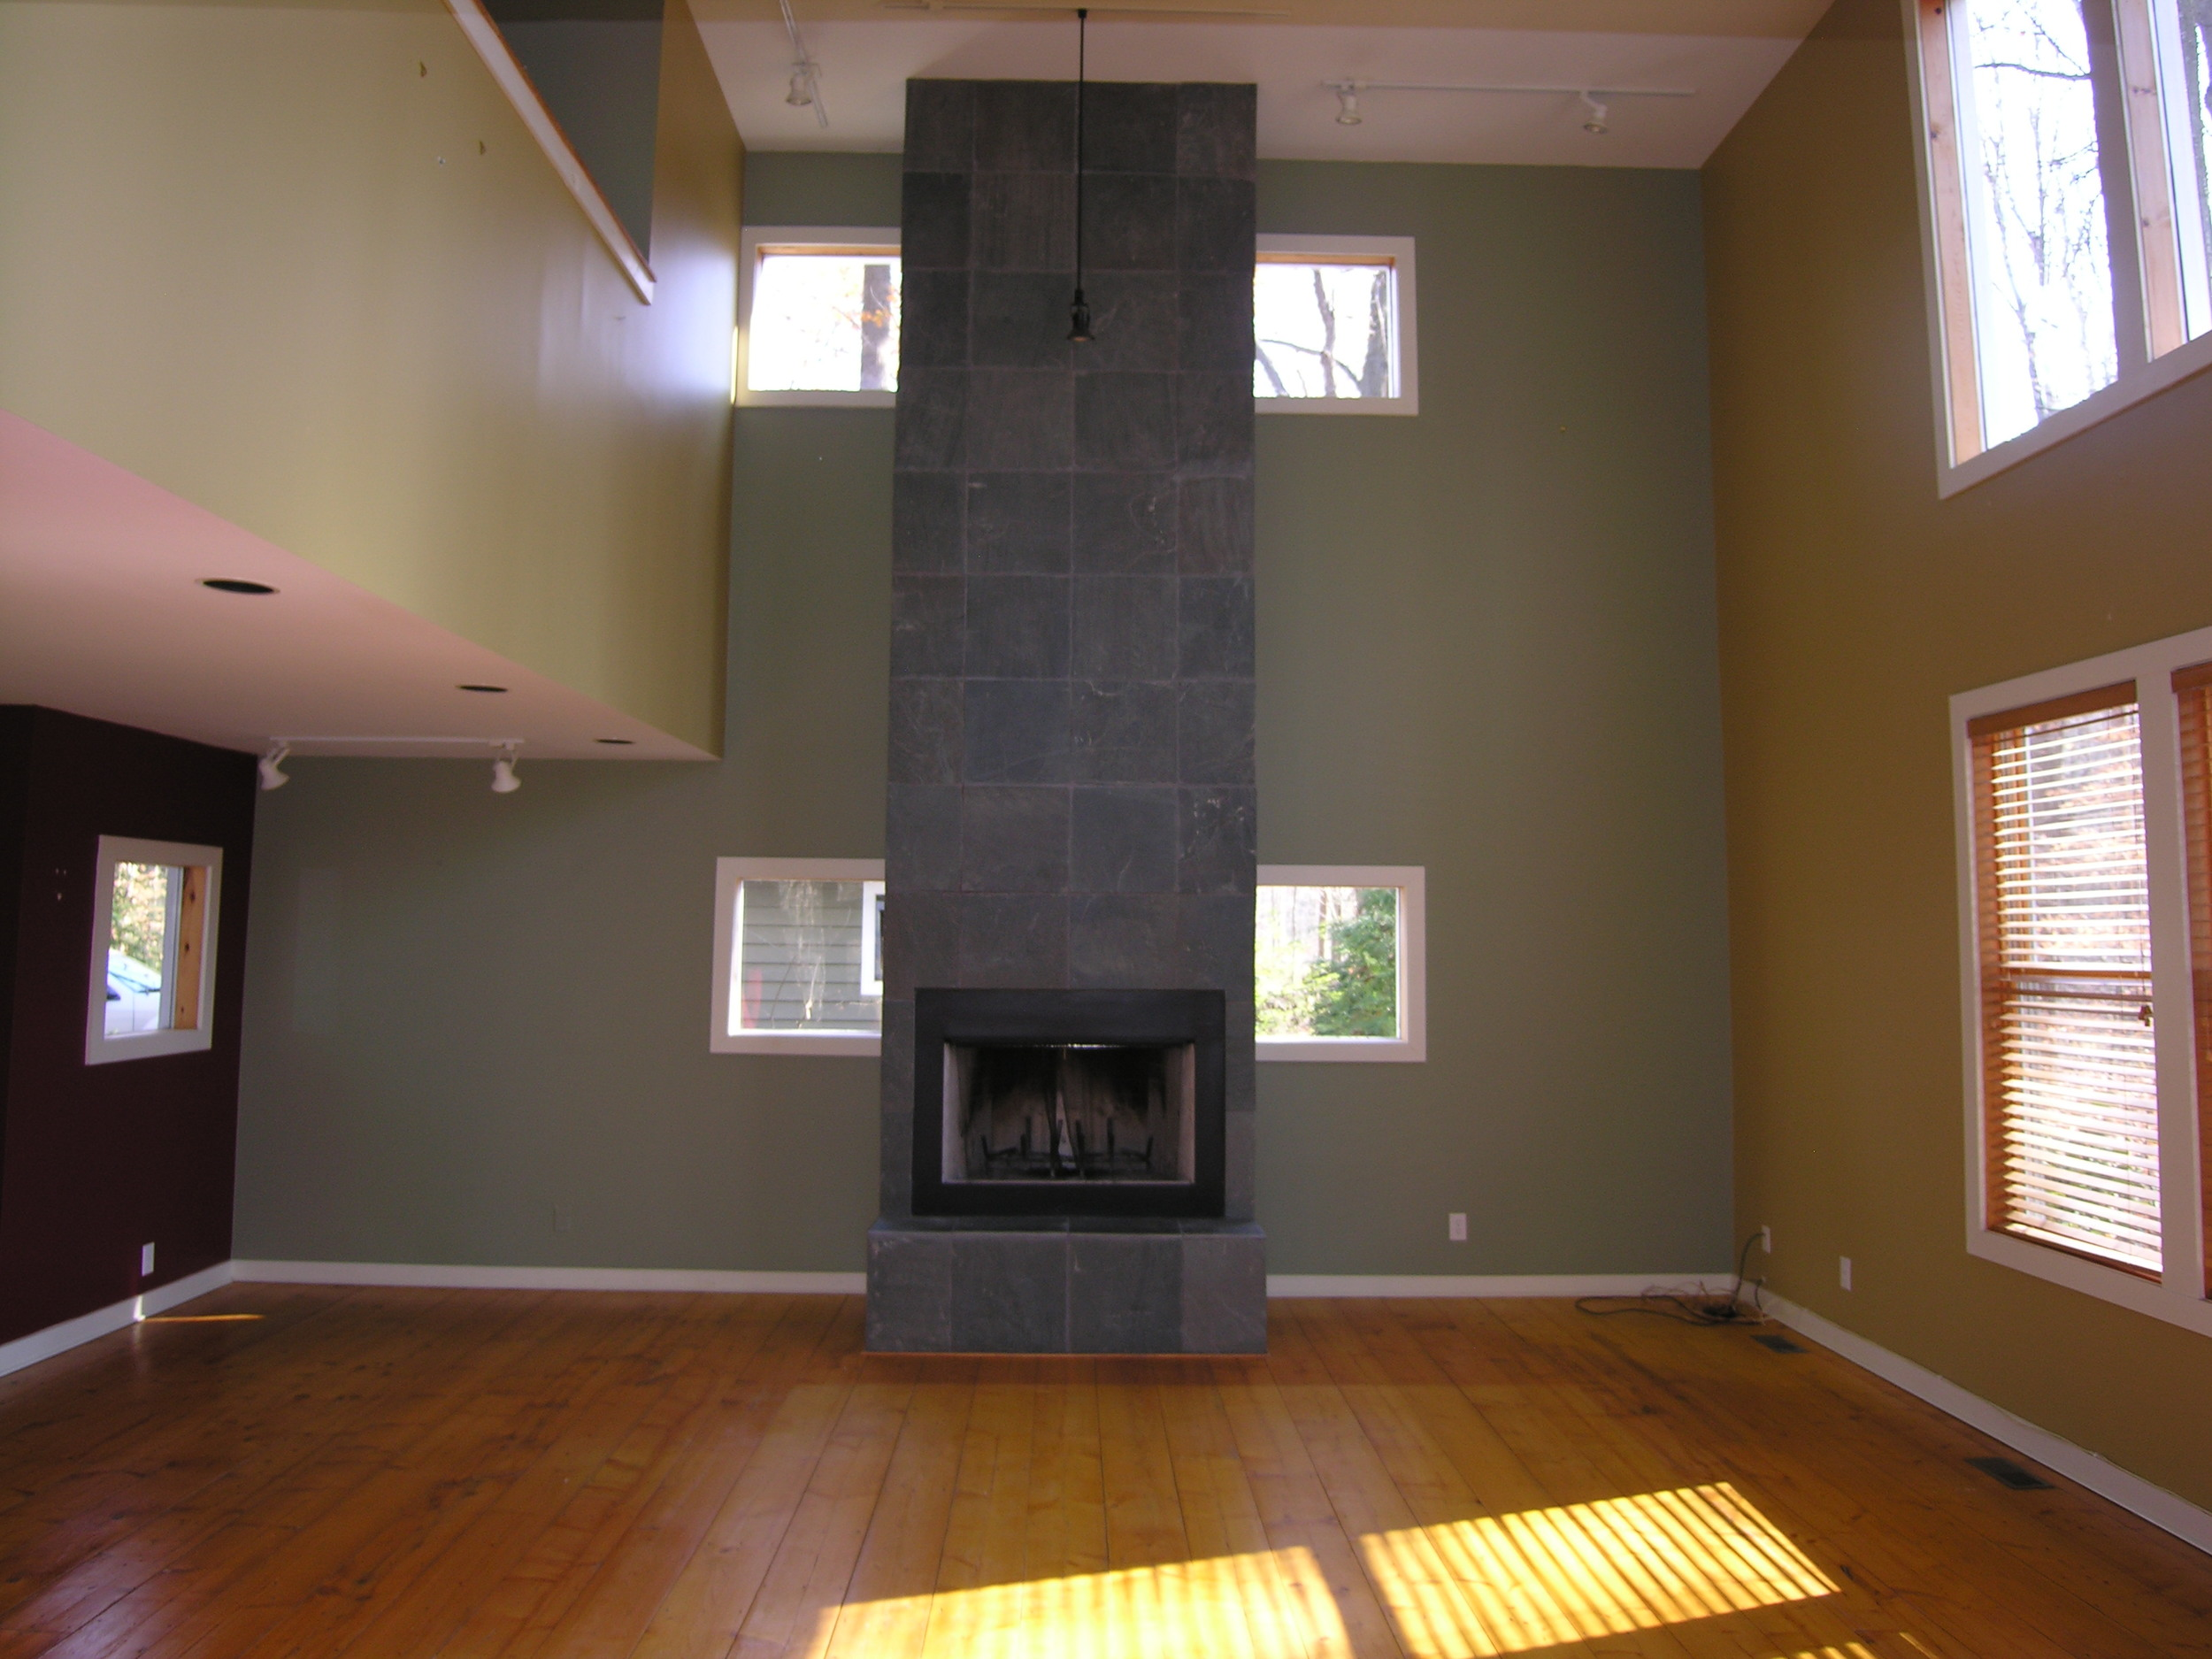 BEFORE: The fireplace soars over 2 stories, but the green walls blend into the slate surround.